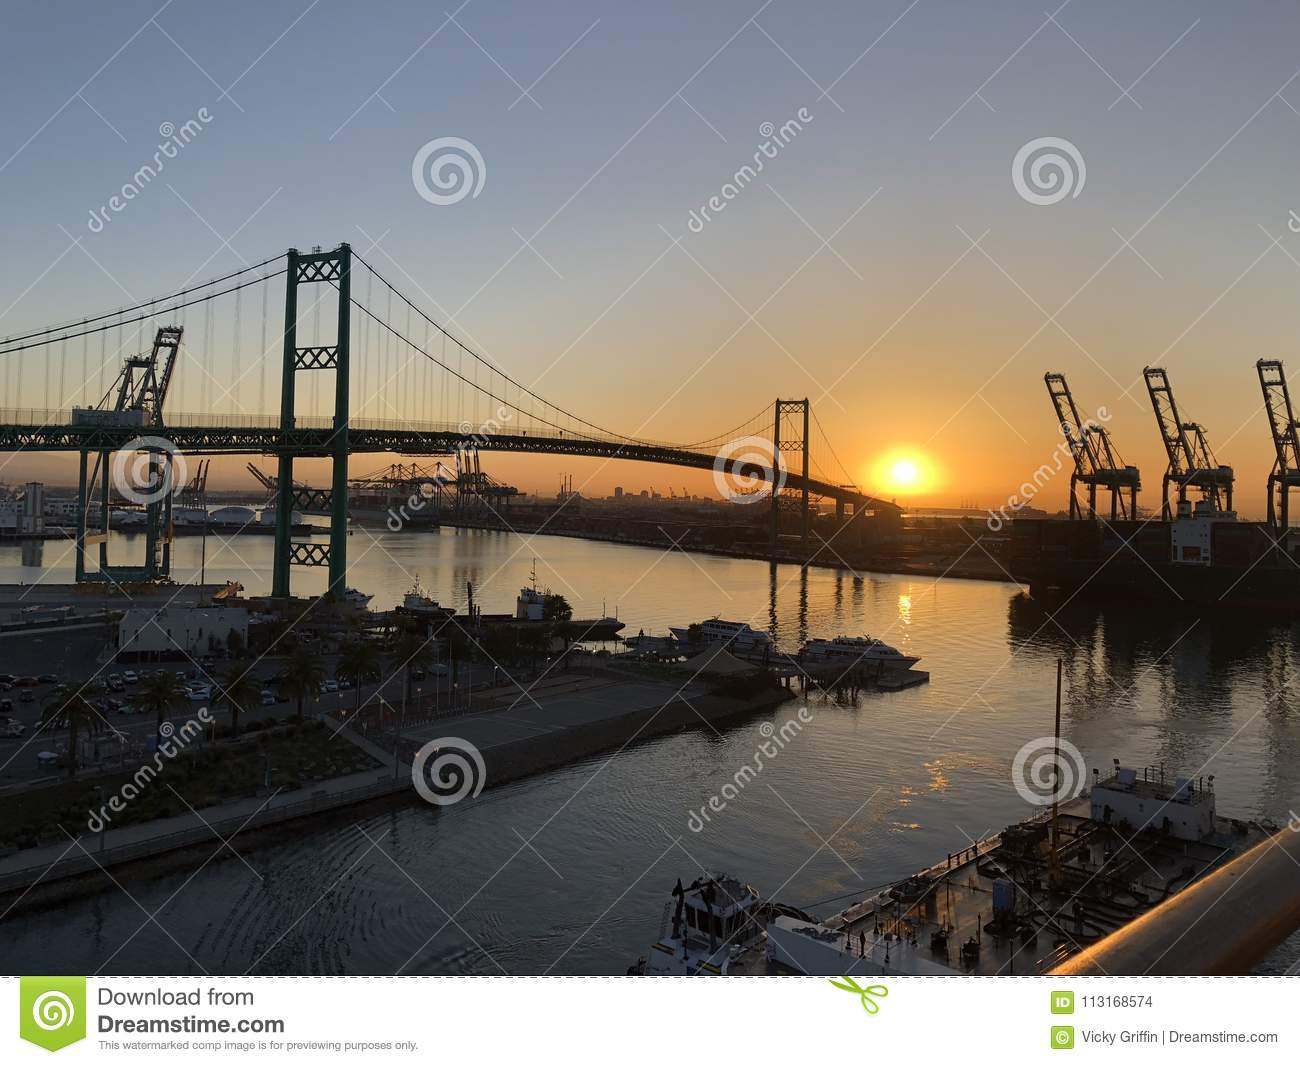 Sunrise over the Port of Los Angeles